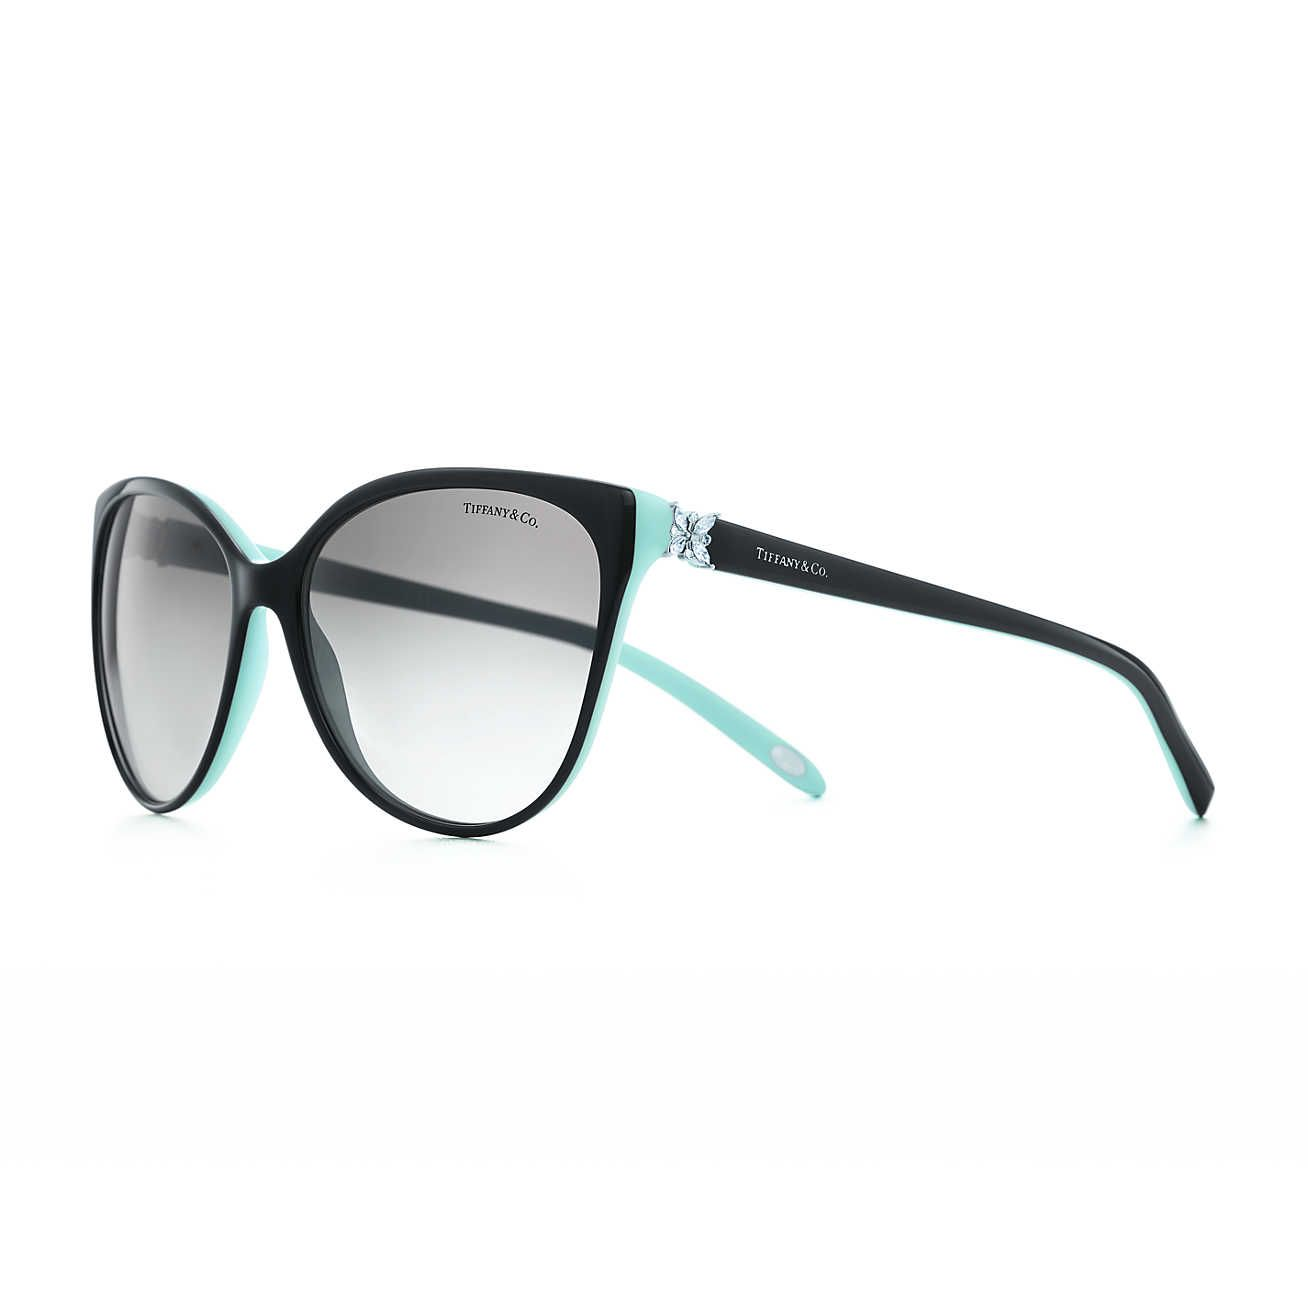 127c3cf56139 Tiffany Victoria® cat eye sunglasses in acetate with Austrian crystals.